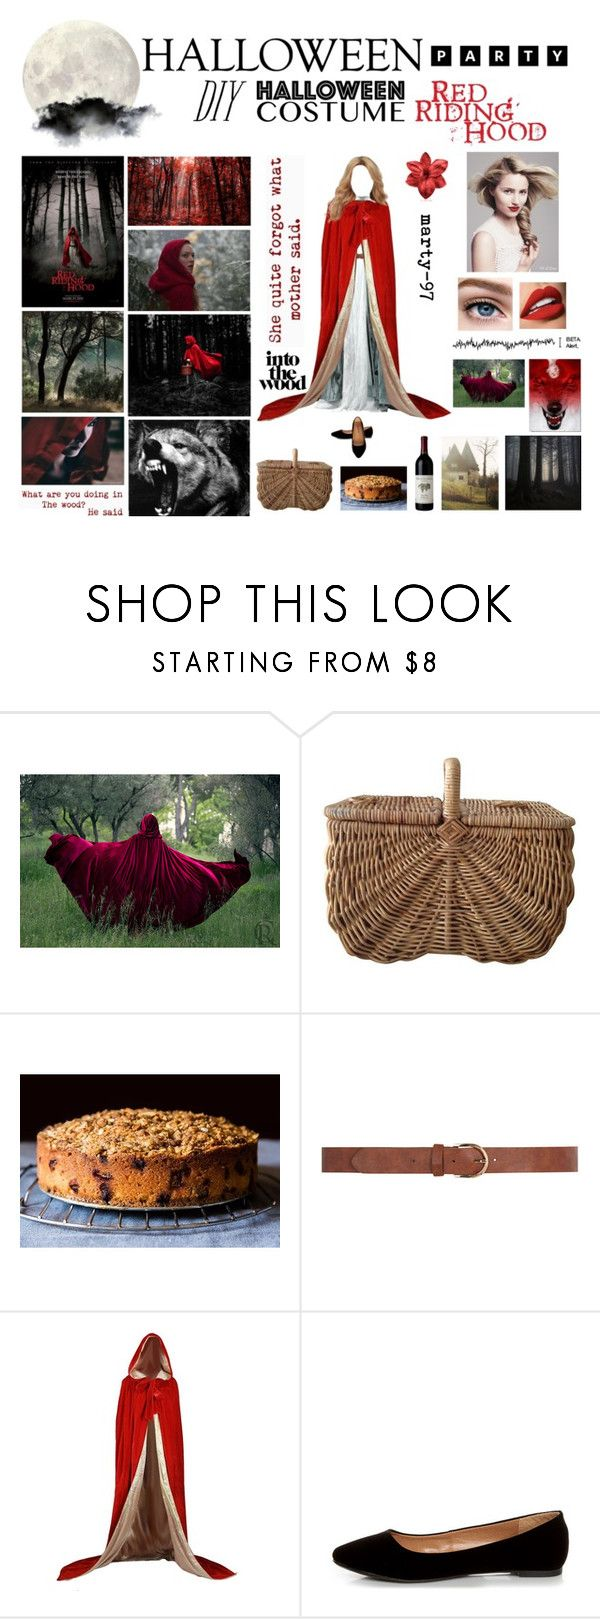 Halloween Party: Red Riding Hood!! by marty-97 on Polyvore featuring moda, City Classified, Classified, Dorothy Perkins, Sephora Collection and Vanity Fair